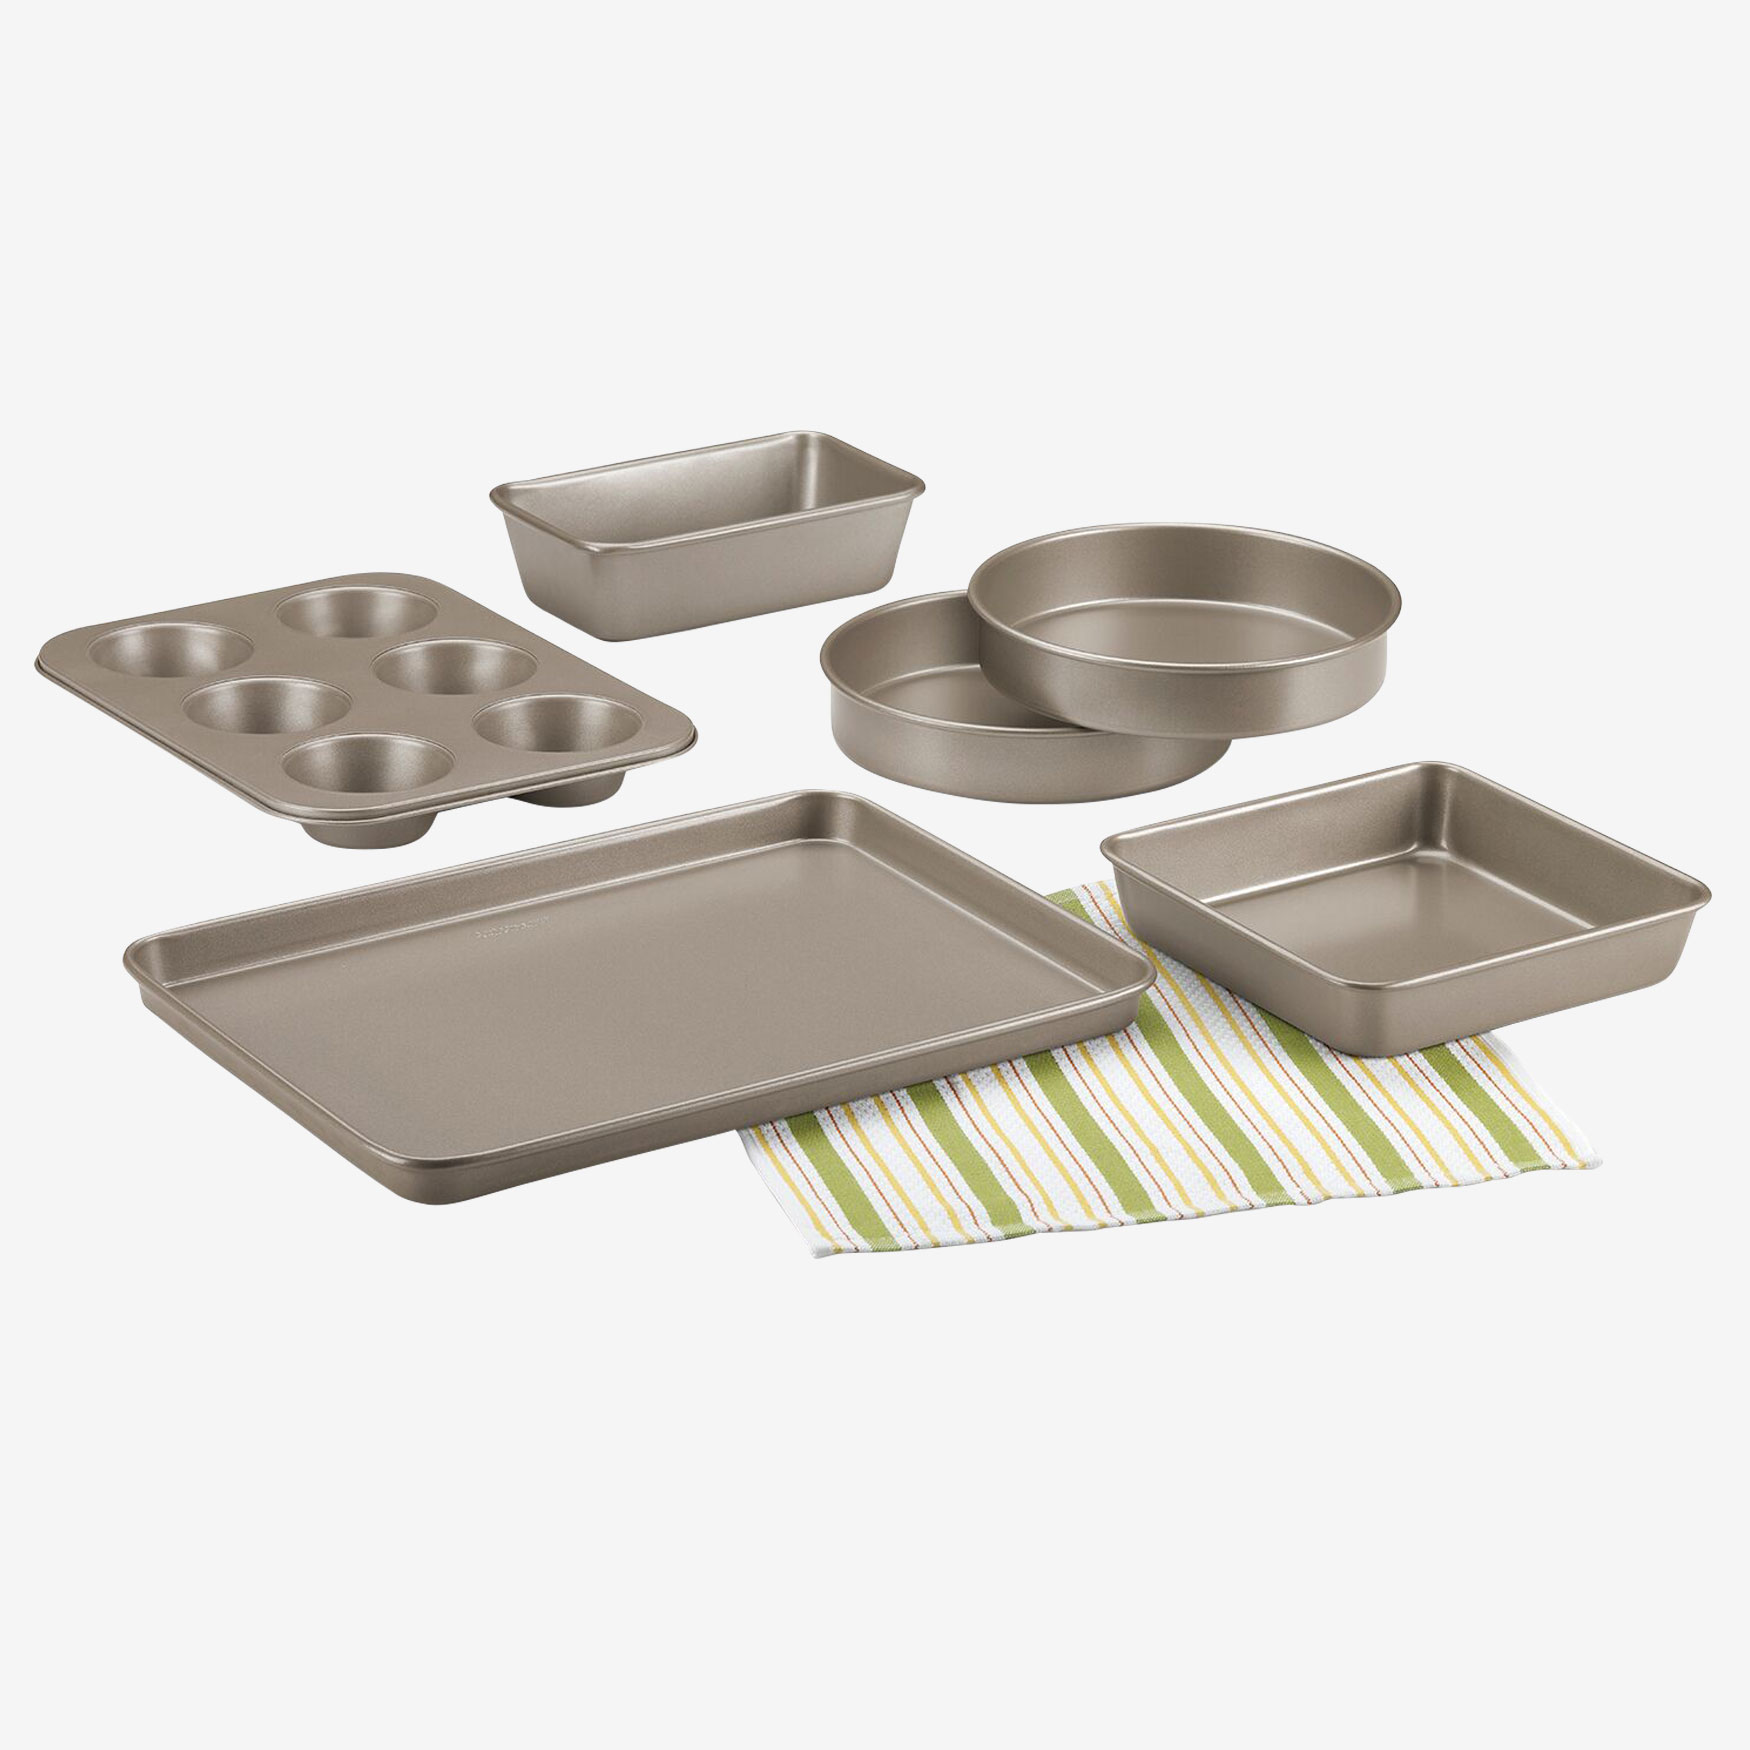 Cuisinart 6-Pc. Classic Bakeware Set, CHAMPAGNE